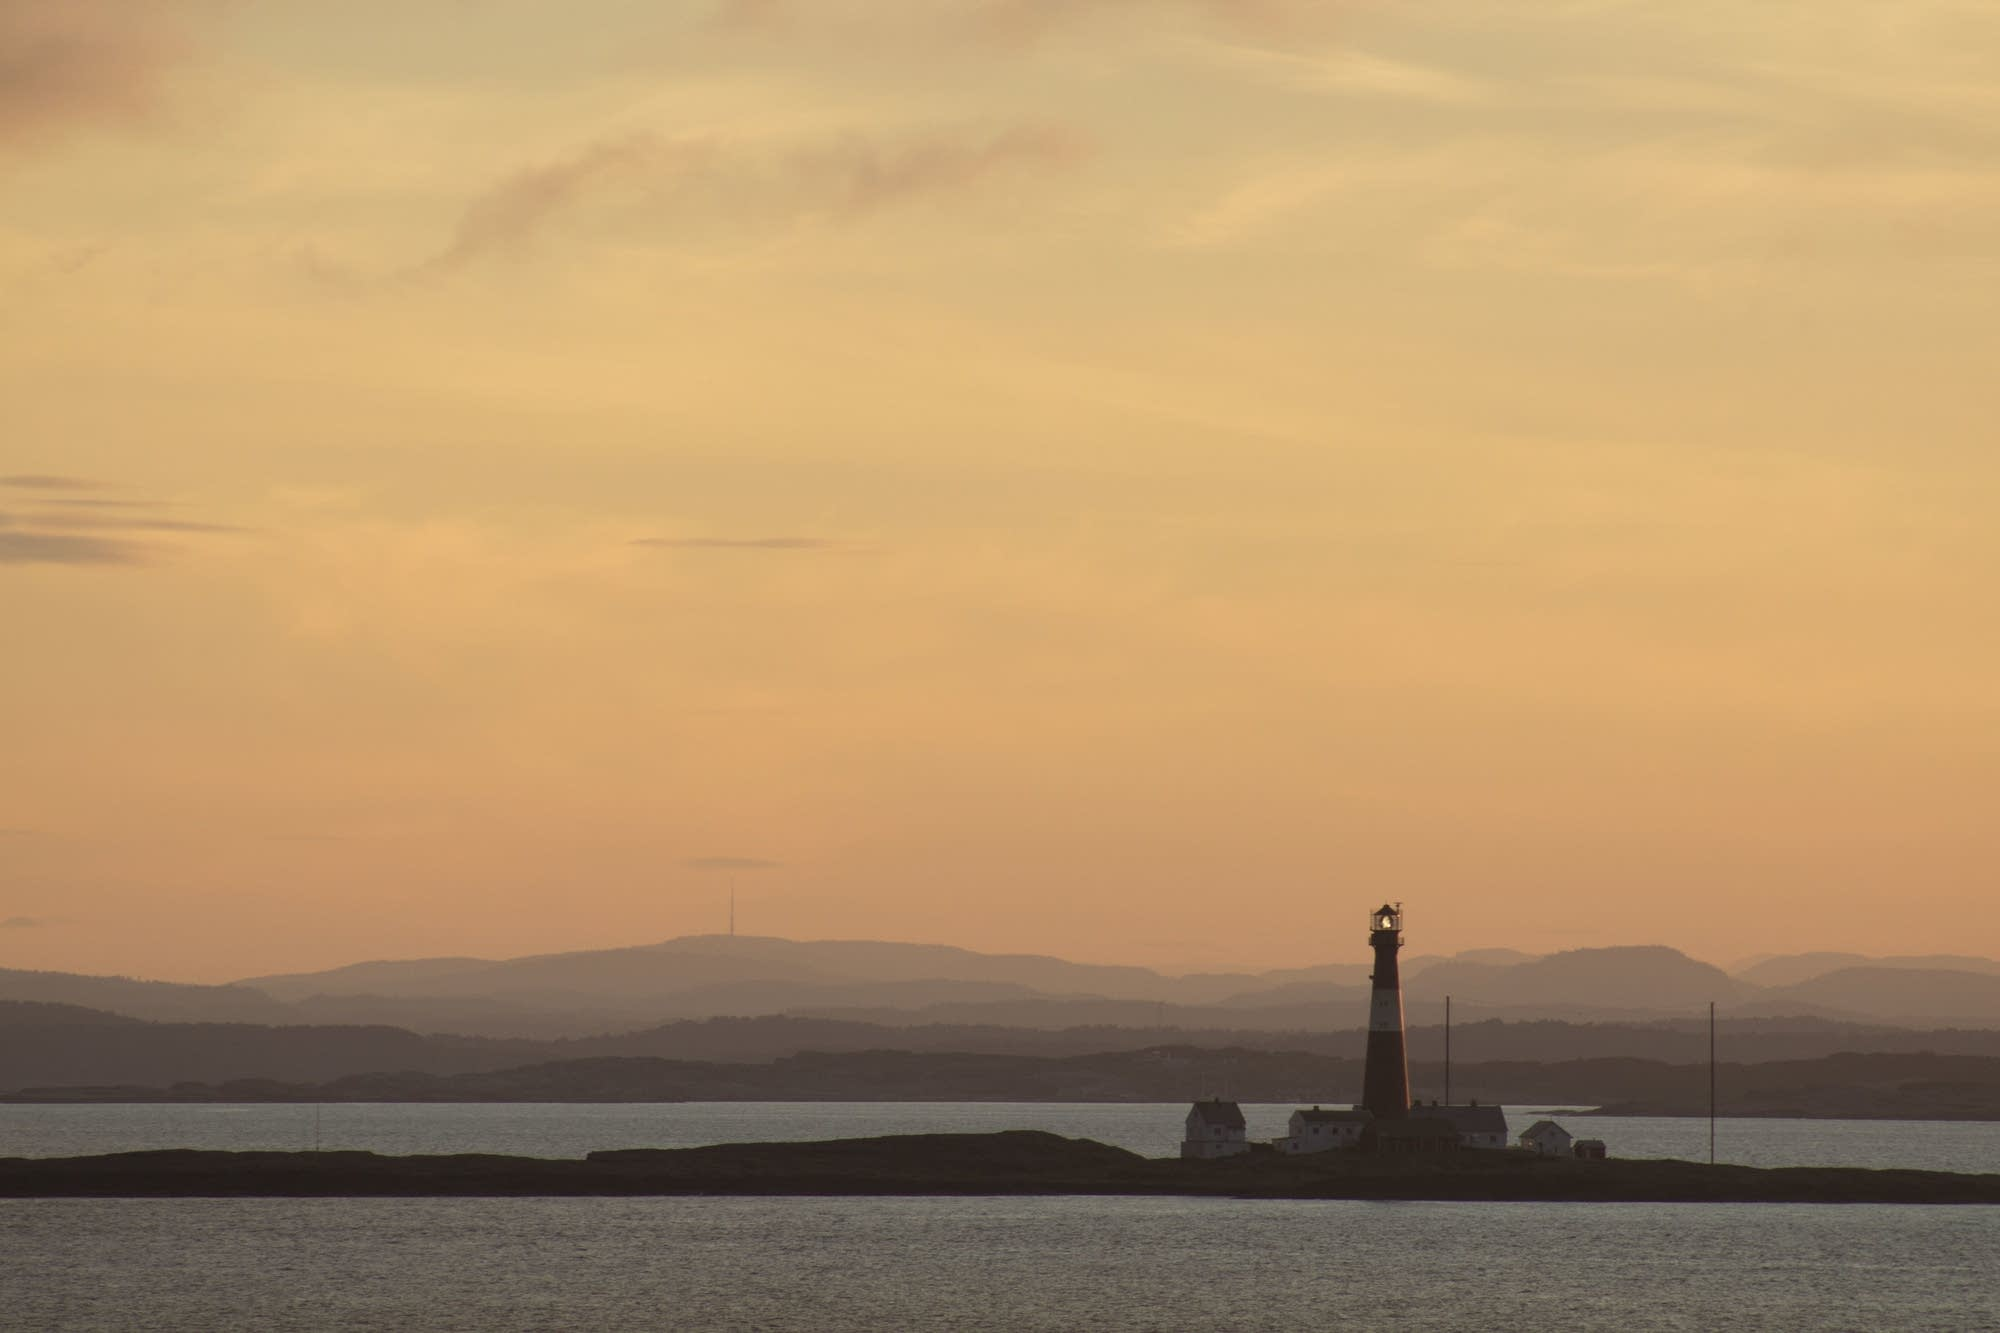 North Sea - 02 - sunset and lighthouse